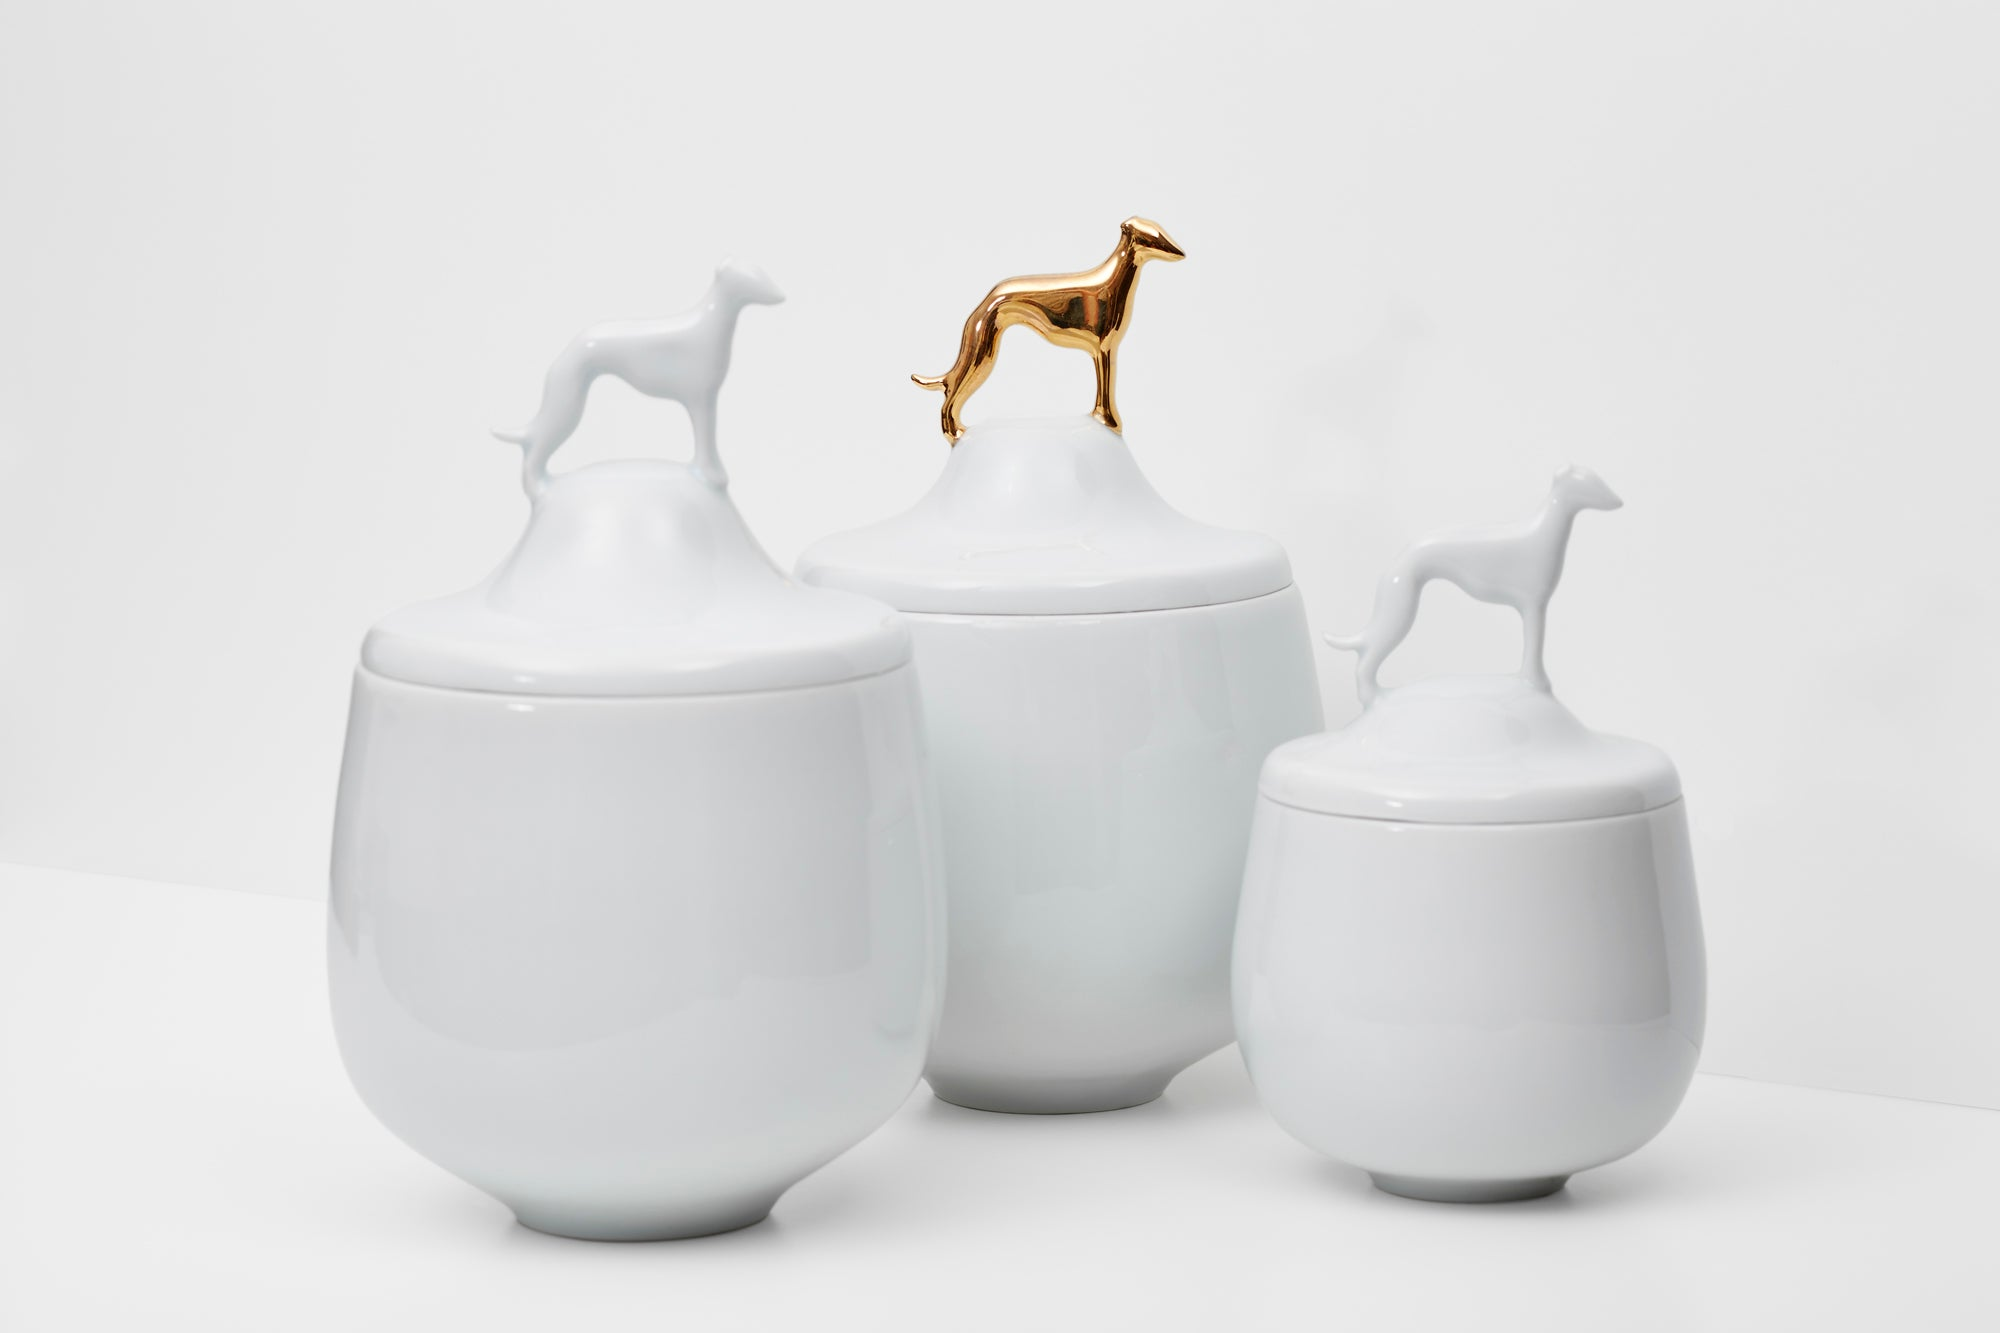 Greyhound porcelain dose